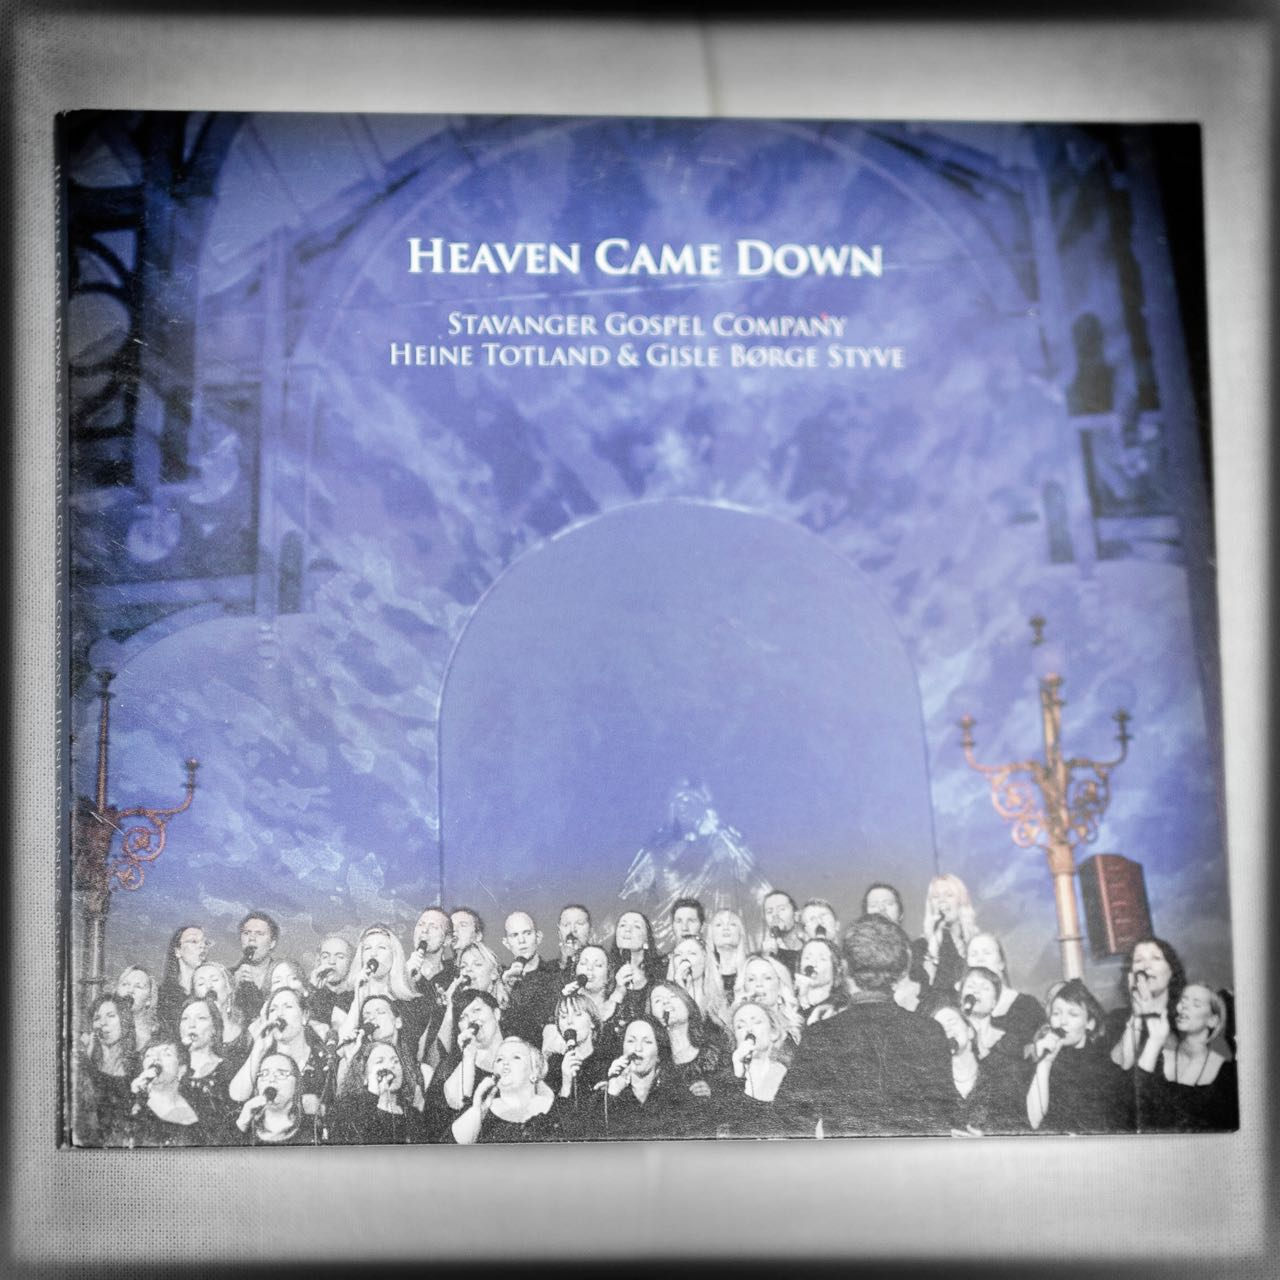 HEAVEN CAME DOWN - SINGEL